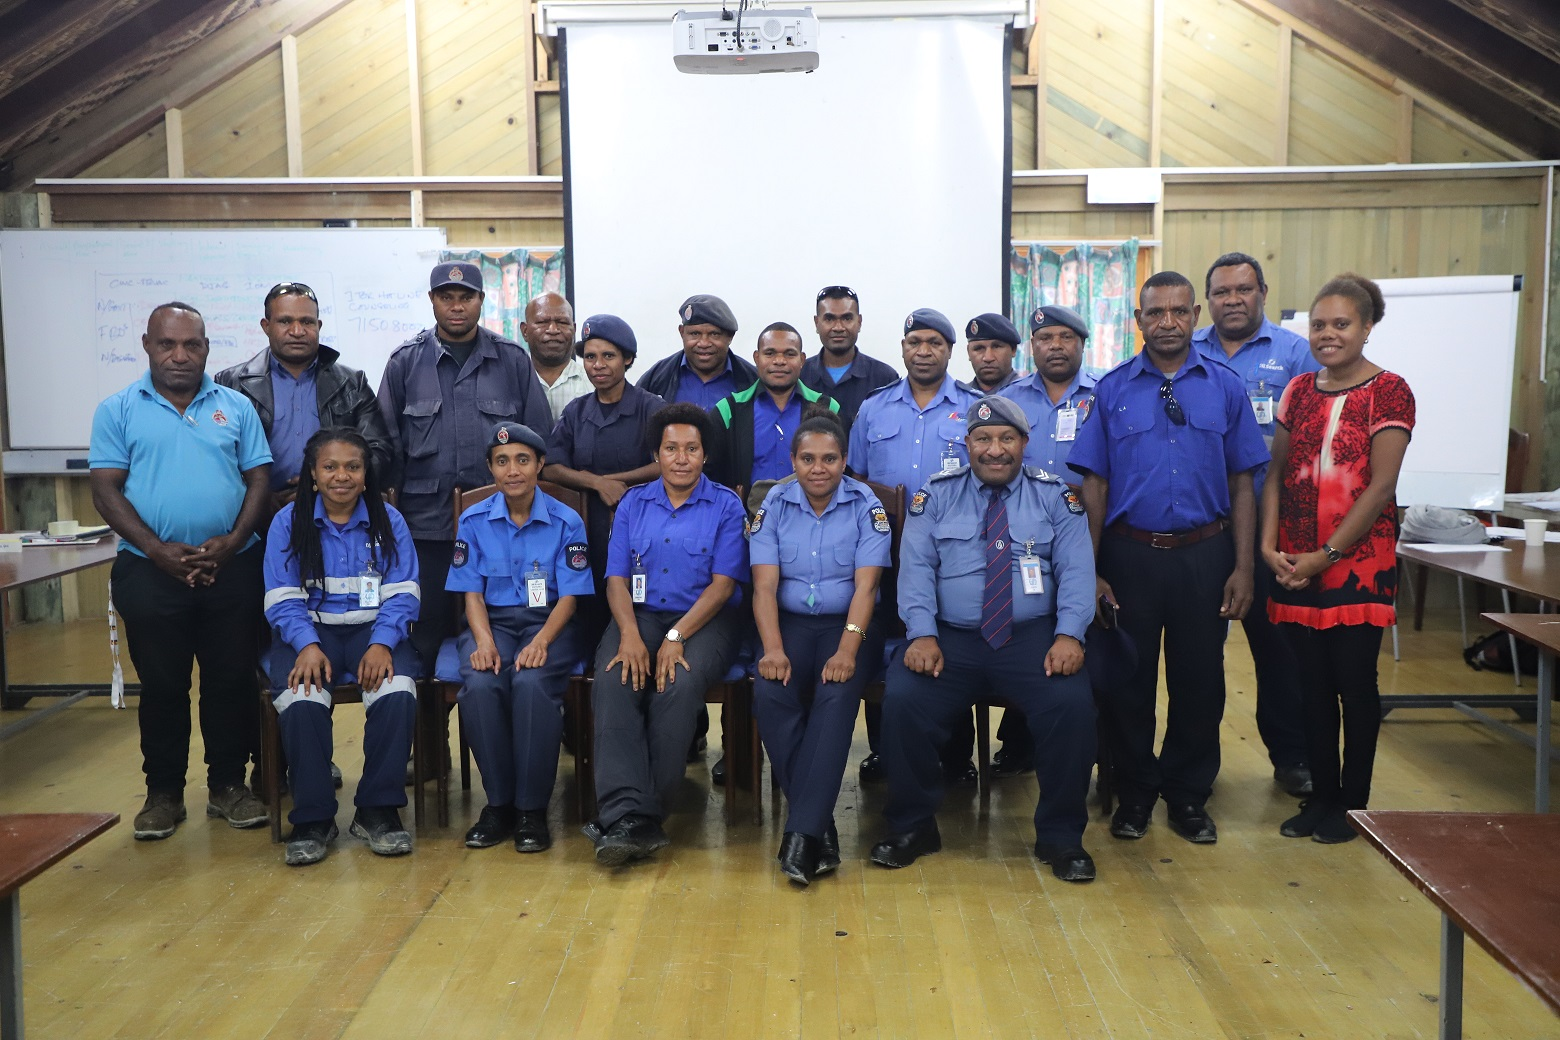 Police officers from Moro, Pimaga and Mendi following the FSV training organised by the Oil Search Foundation (OSF) in partnership with the Department of Justice and Attorney General.